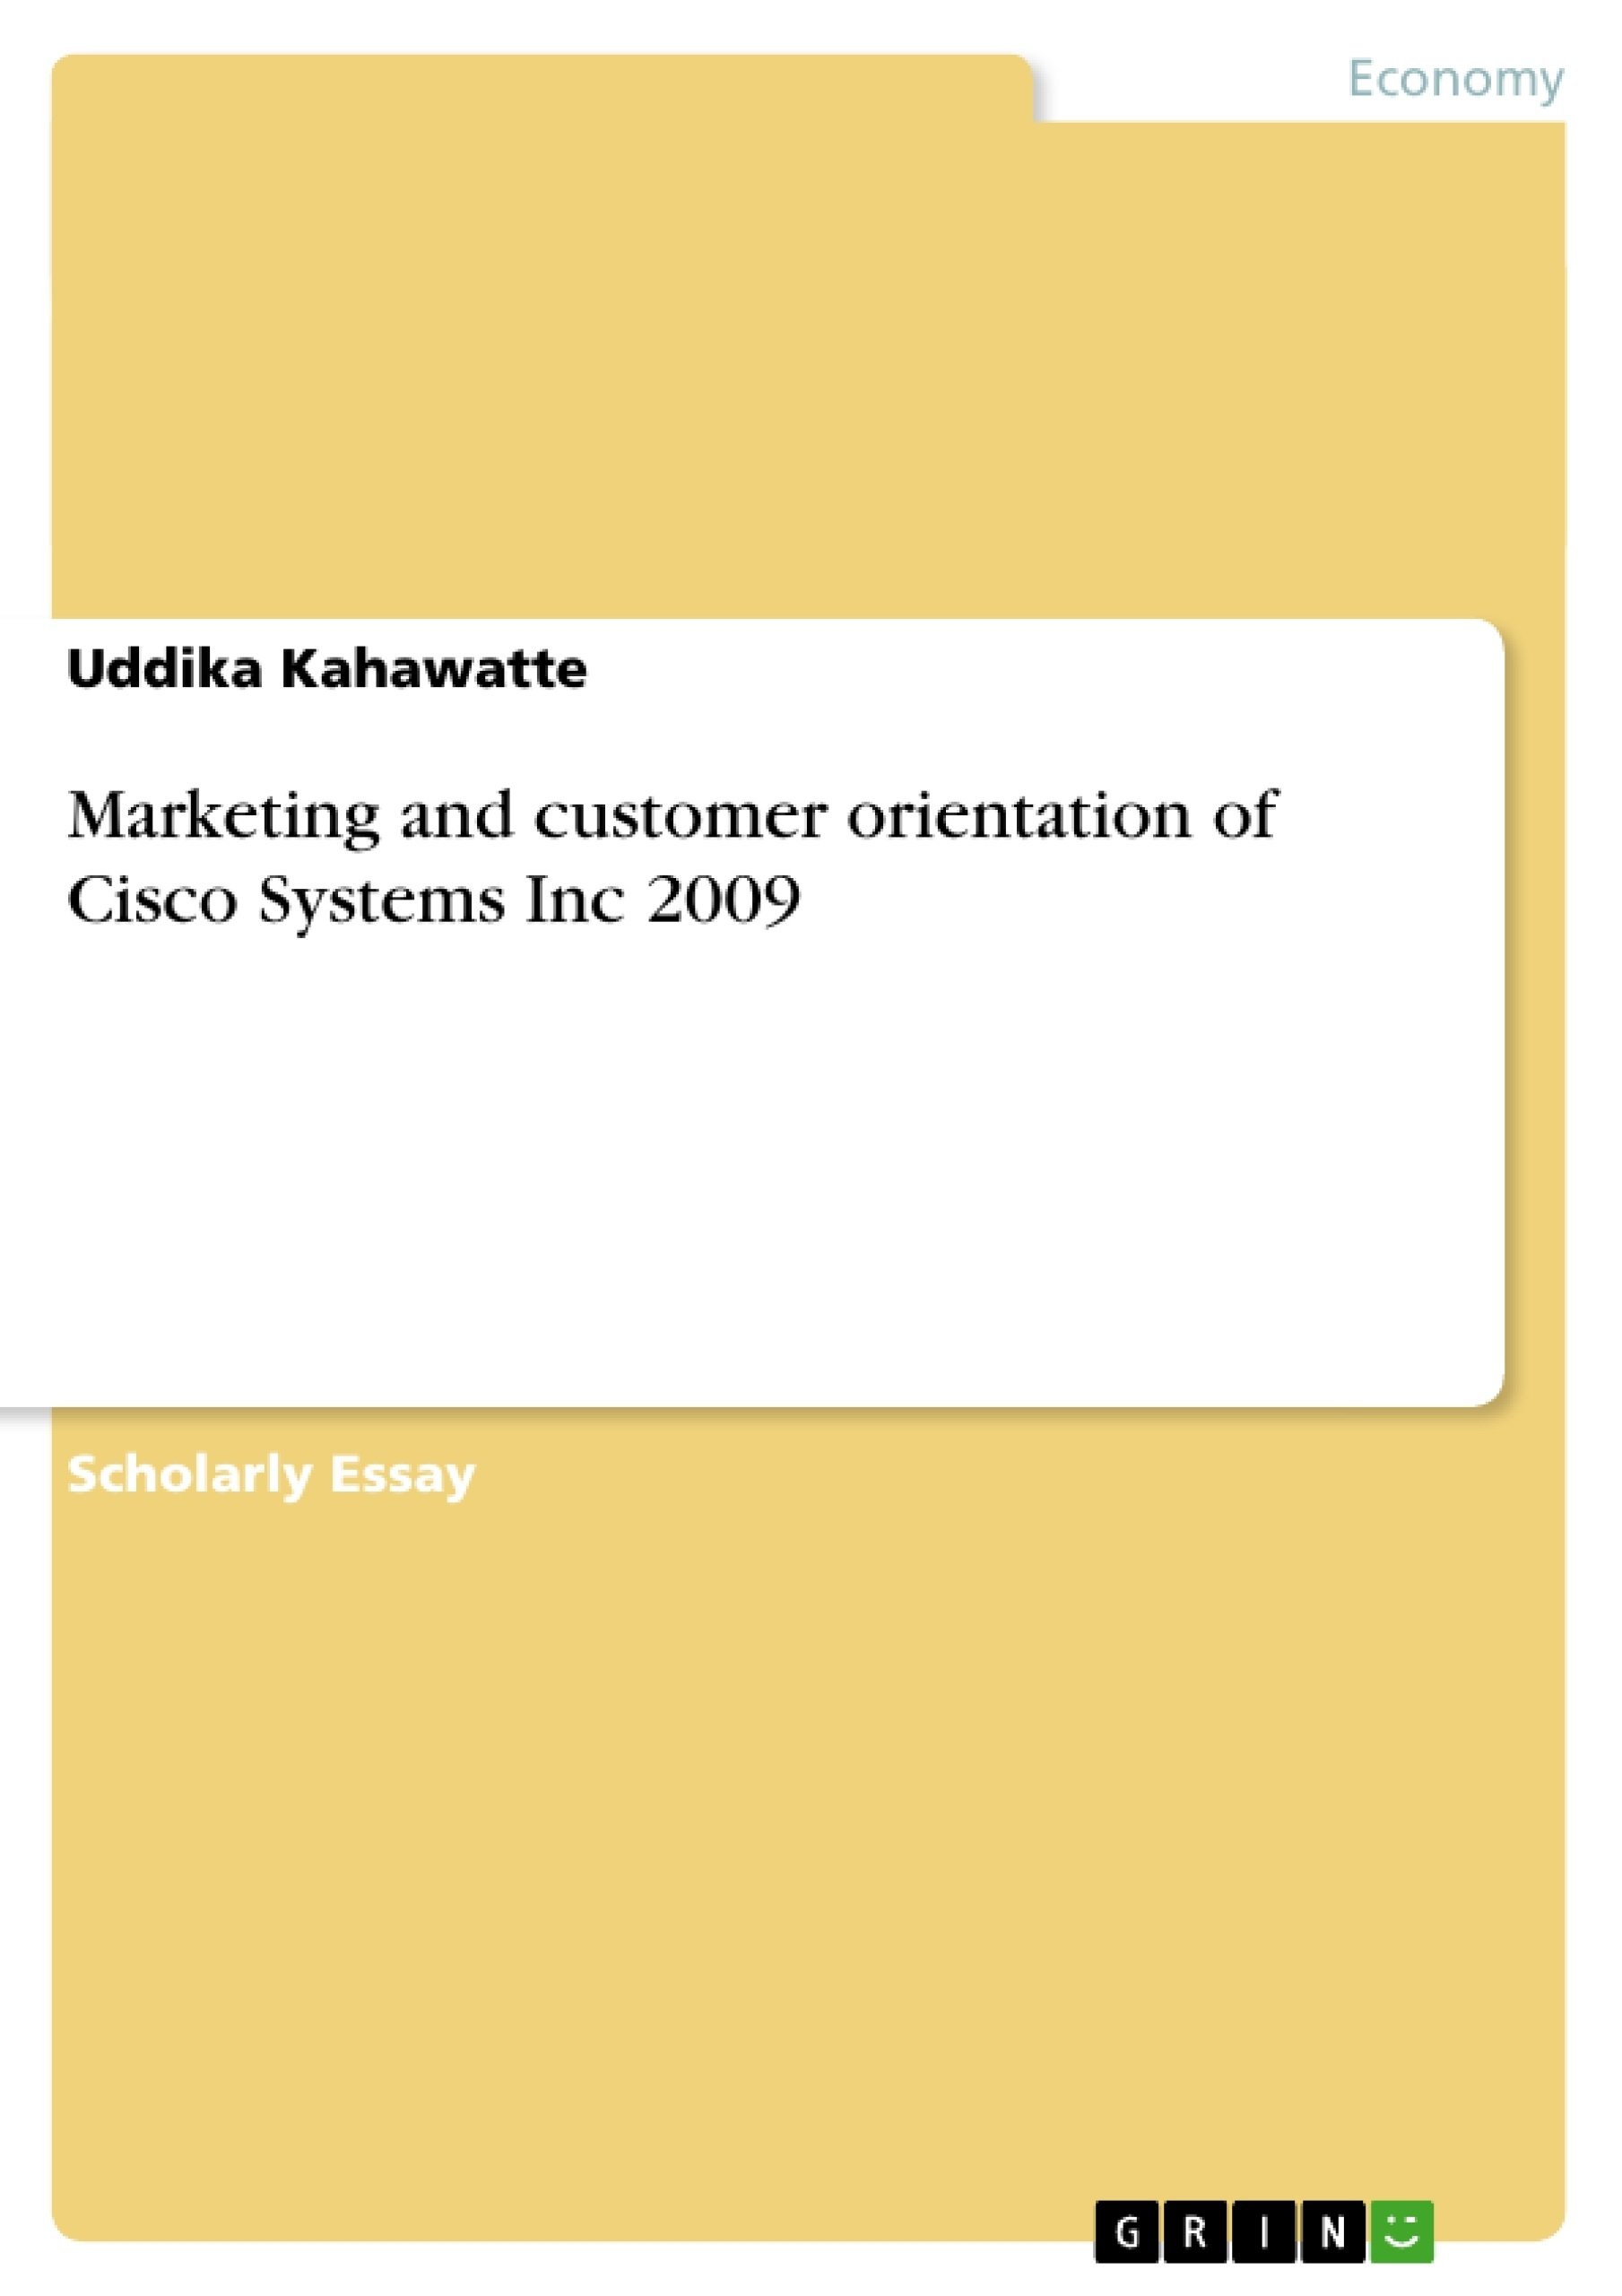 Title: Marketing and customer orientation of Cisco Systems Inc 2009